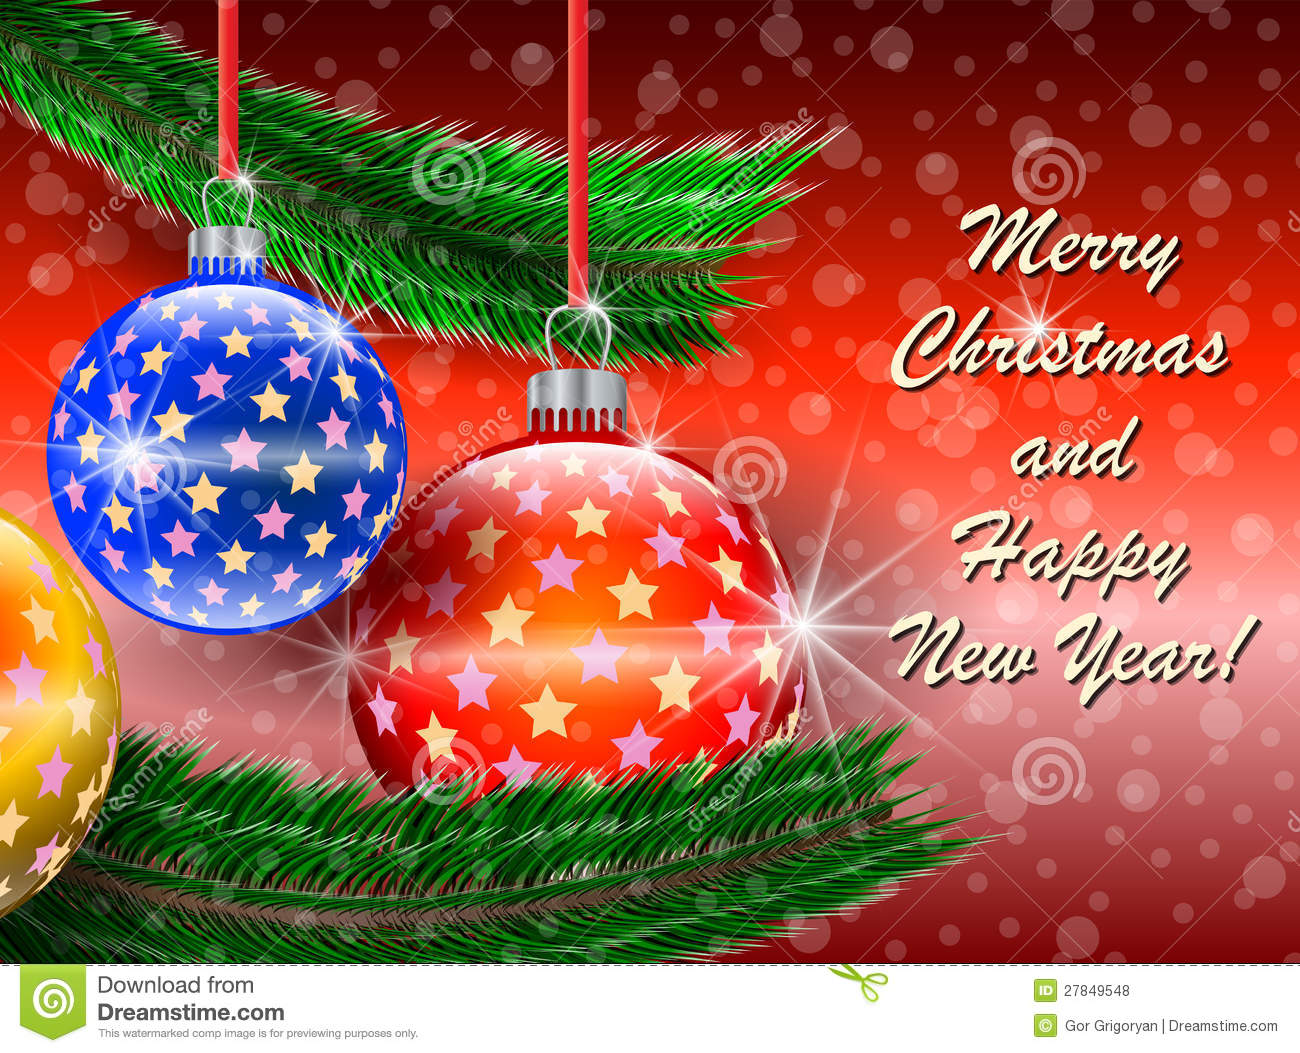 Merry Christmas And Happy New Year Greetings Card Stock Vector